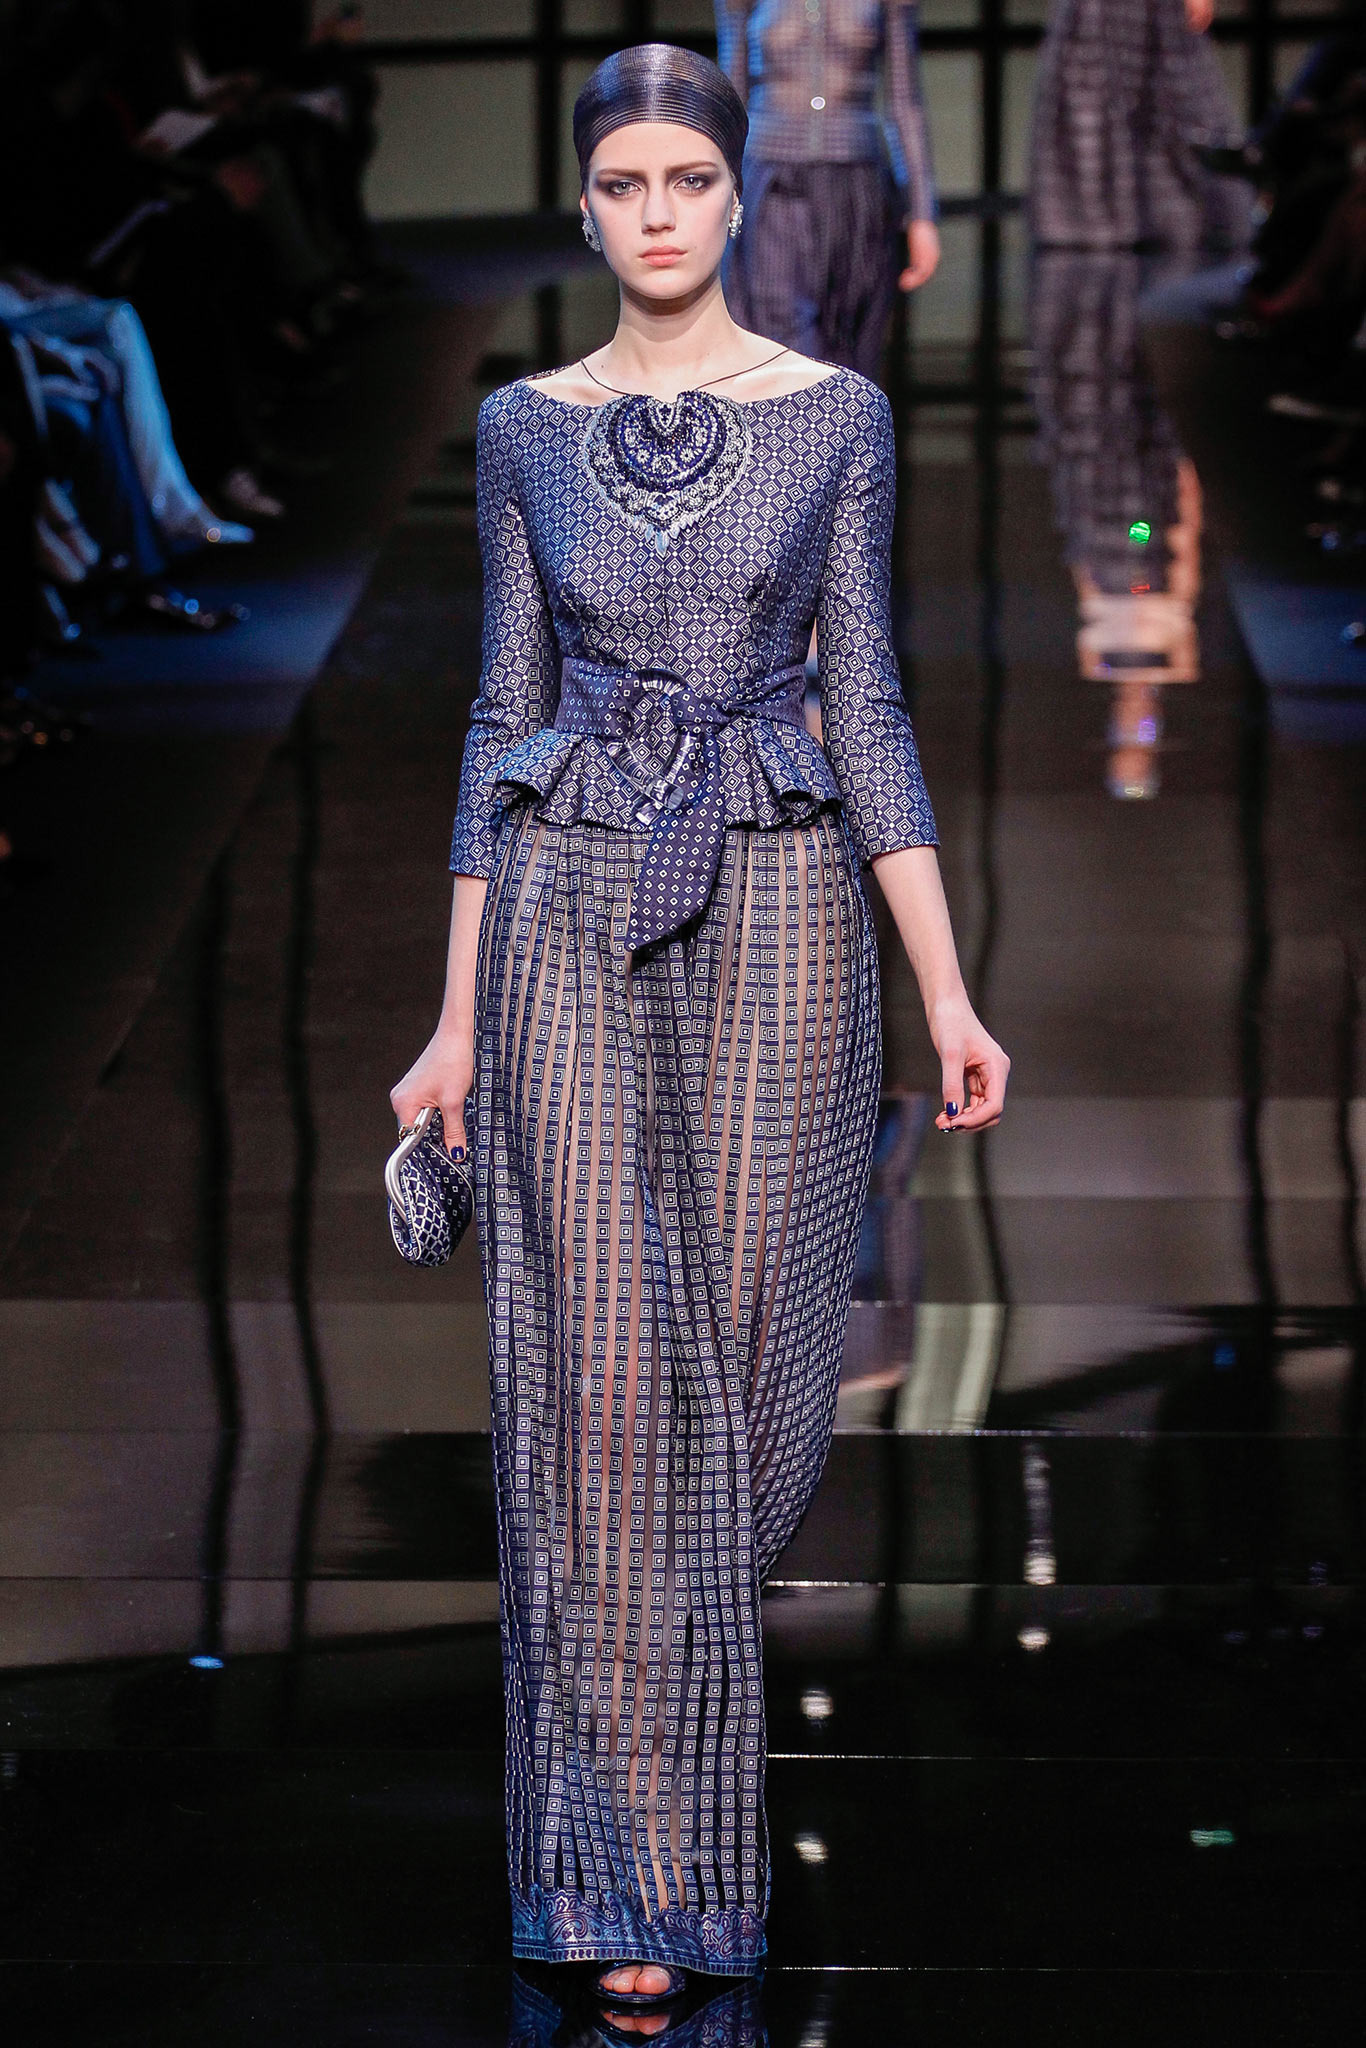 ESTHER_HEESCH_ARMANI_PRIVE_SPRING_2014_COUTURE_INDIGITAL-15.jpg